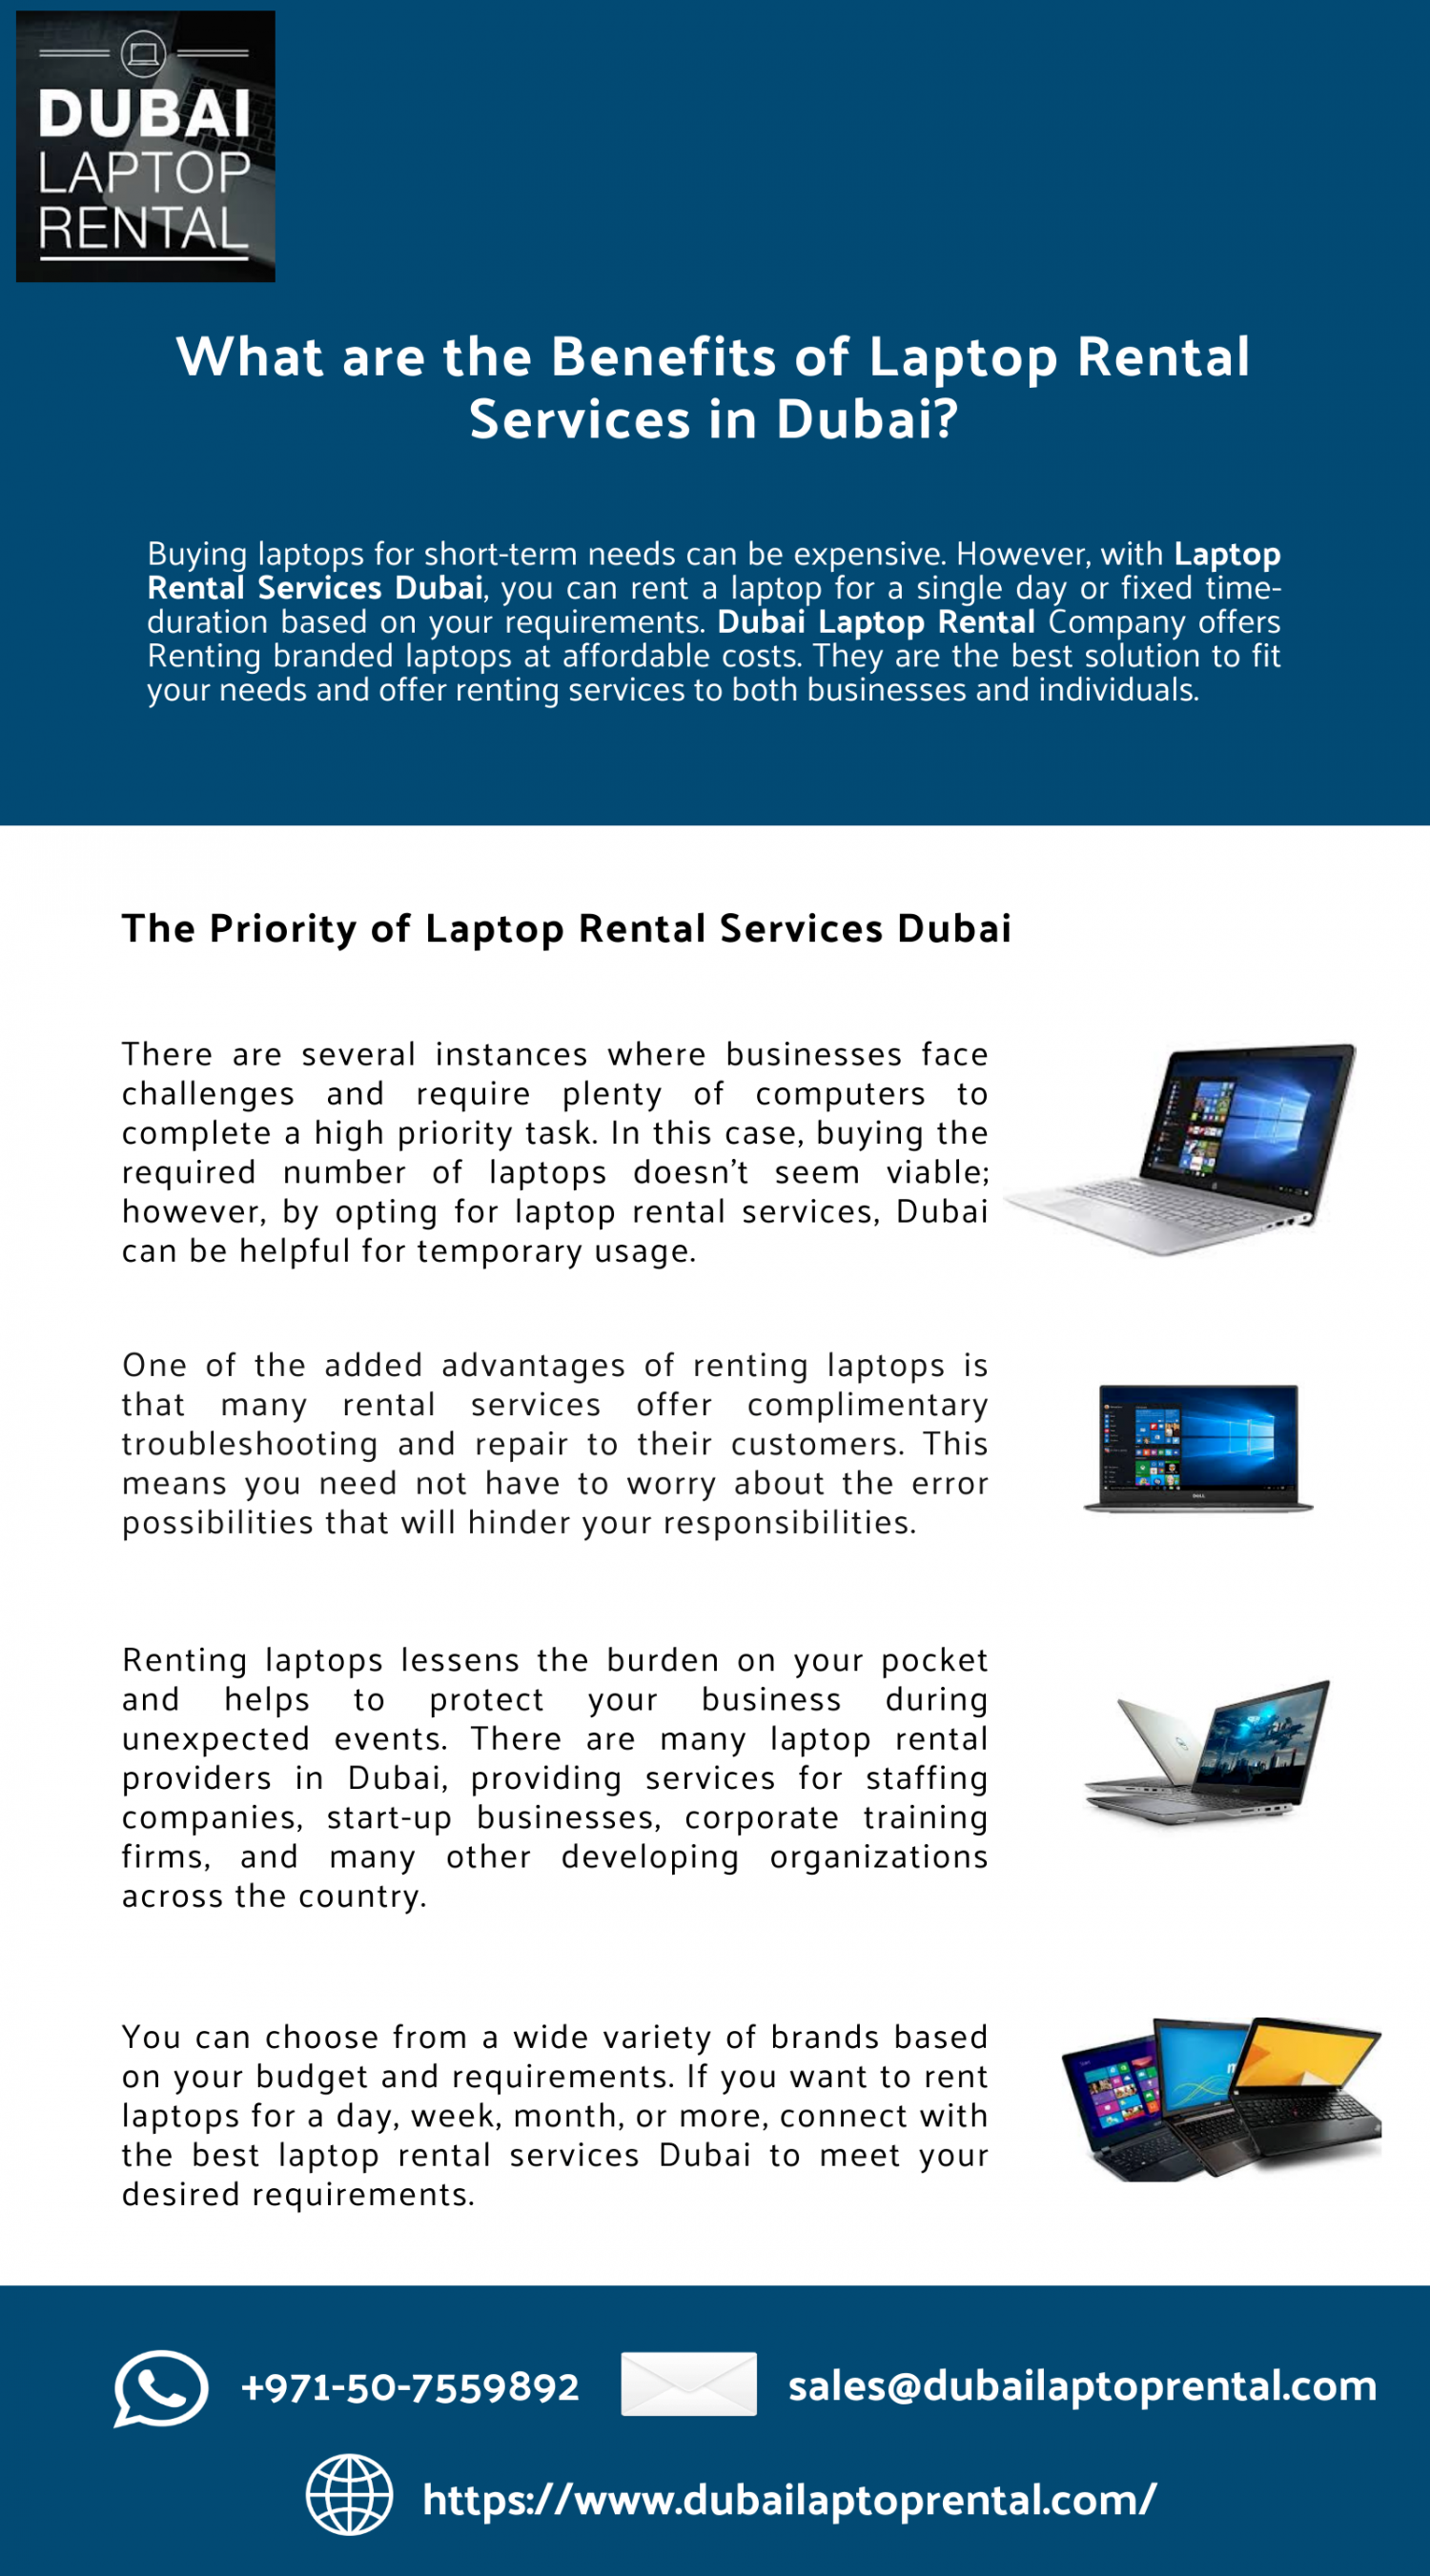 What are the Benefits of Laptop Rental Services in Dubai? Infographic